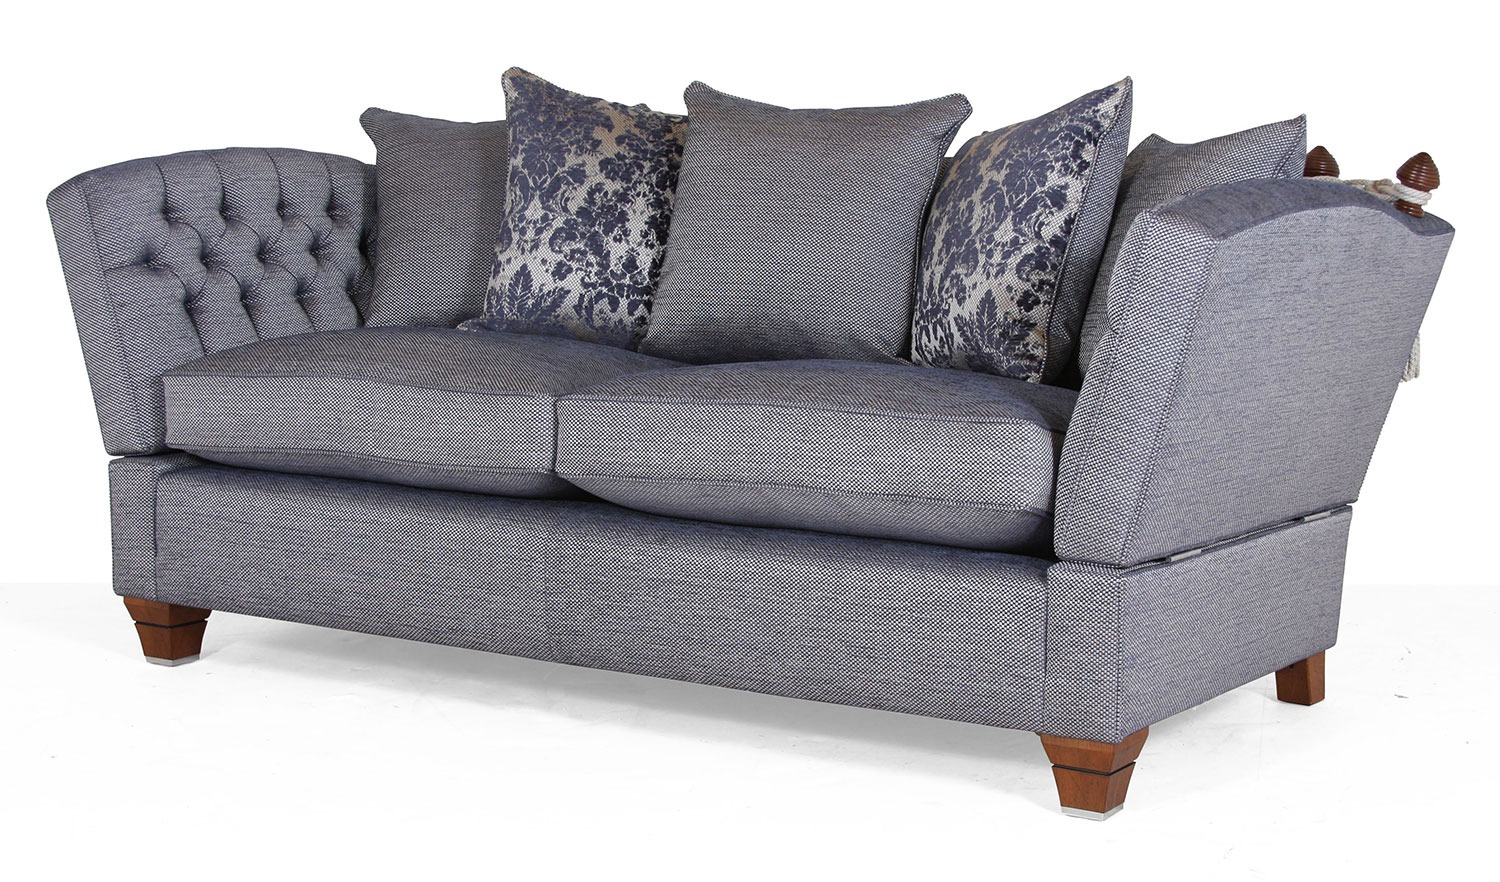 Richmond Knole 3 seat sofa in Cosmopolitan